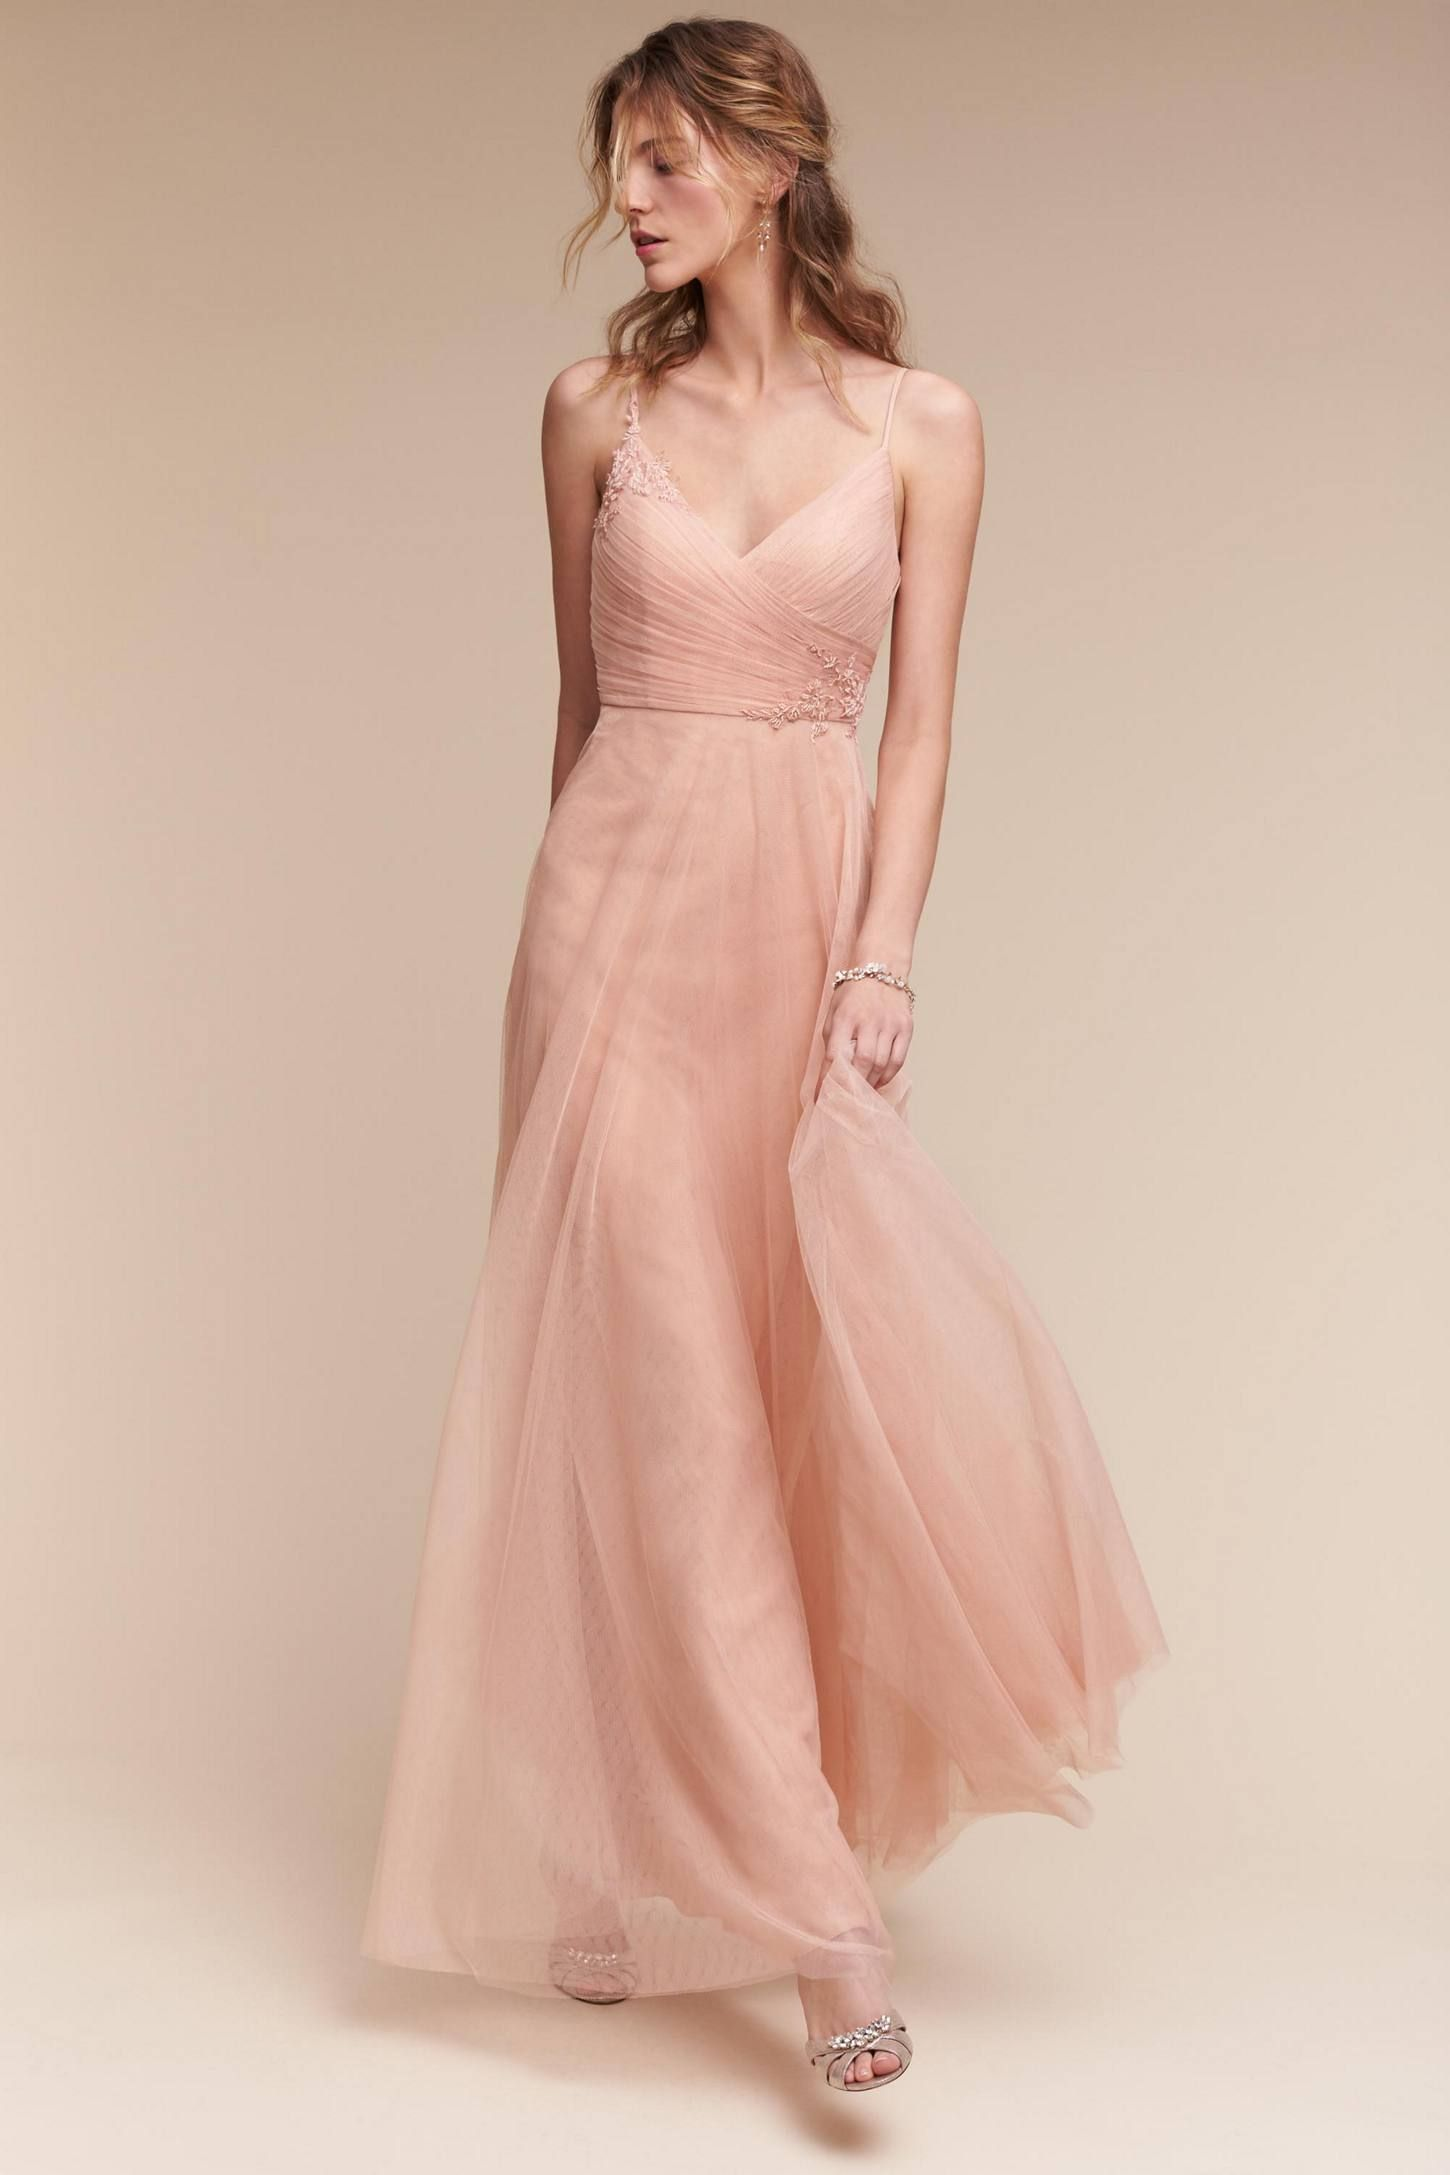 Shop The Brielle Dress And More Anthropologie At Anthropologie Today Read Customer Reviews Discover Cocktail Dress Wedding Long Bridesmaid Dresses Blush Gown